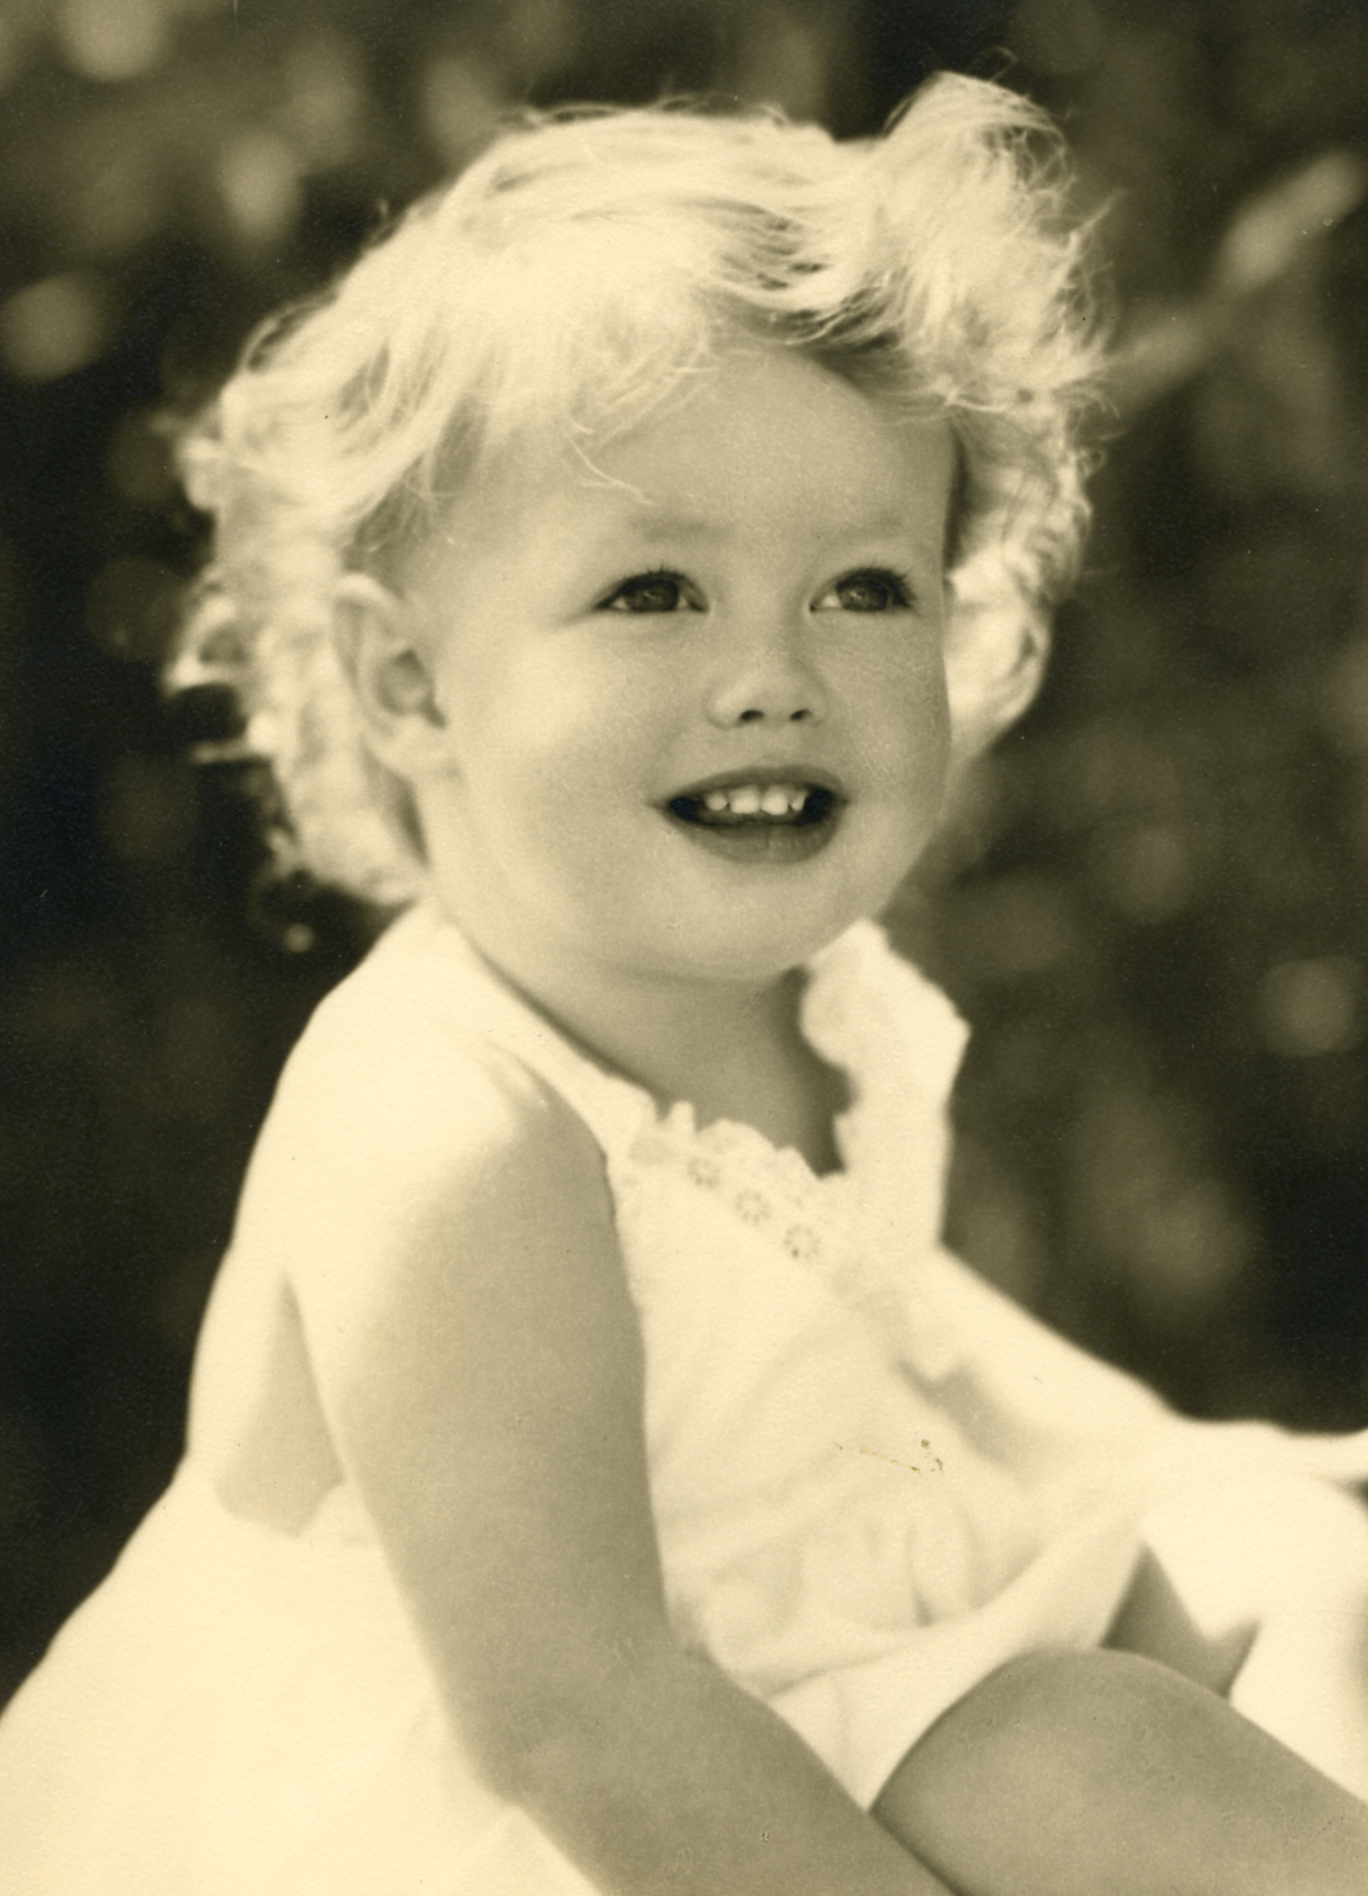 Diane Stanley baby picture